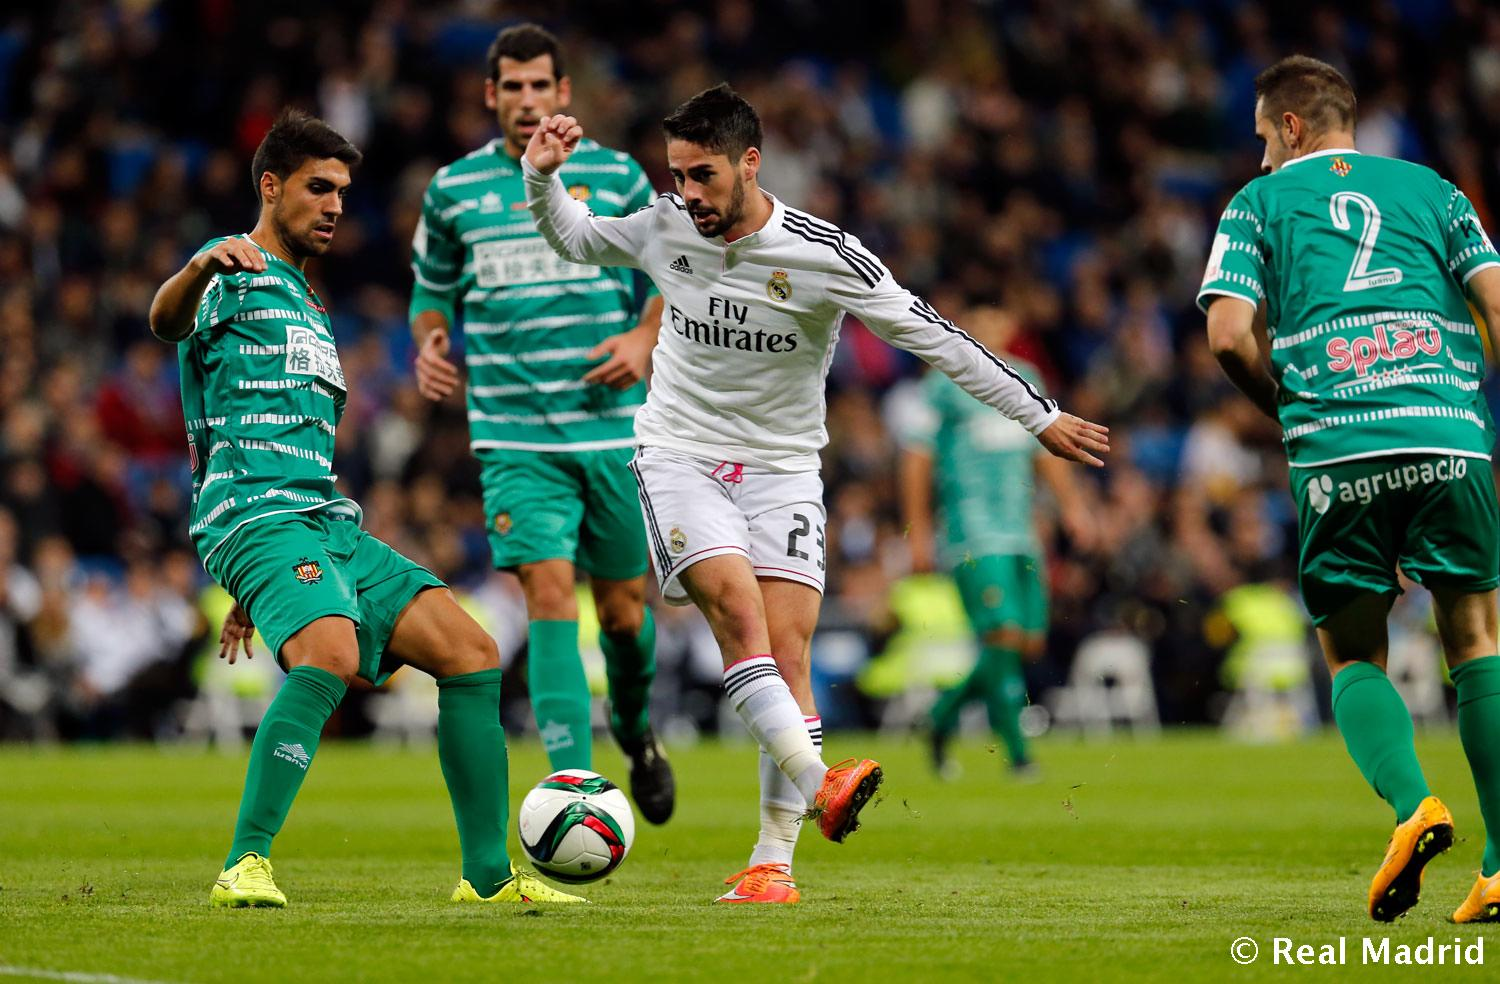 Real Madrid - Real Madrid - Cornellà - 02-12-2014